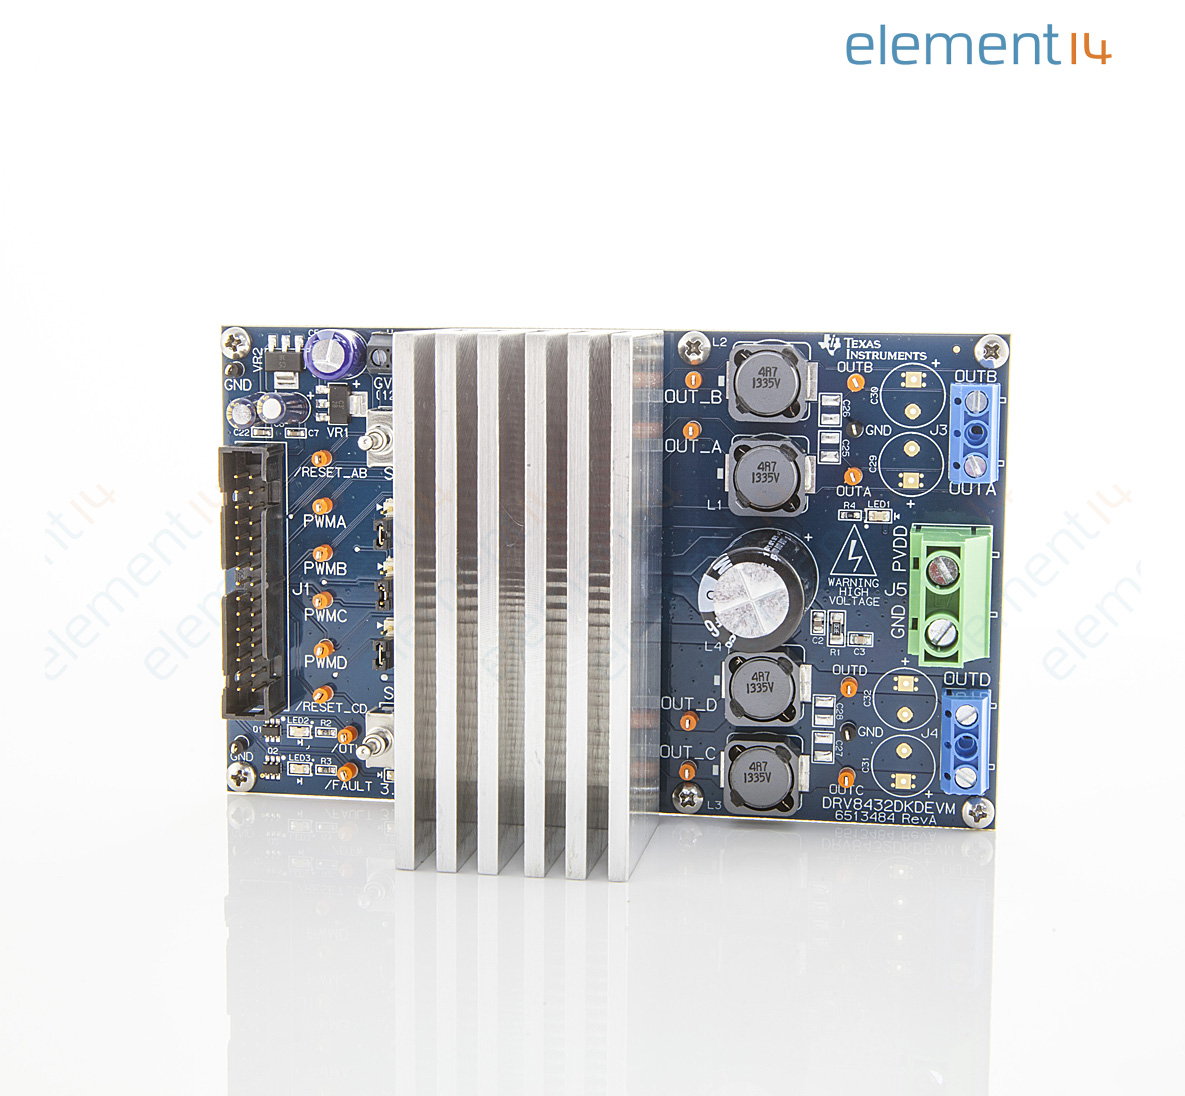 Drv8432evm Texas Instruments Evaluation Module Drv8432 12a Dual Electronics Learning Circuits Webonly Products Technology Add To Compare